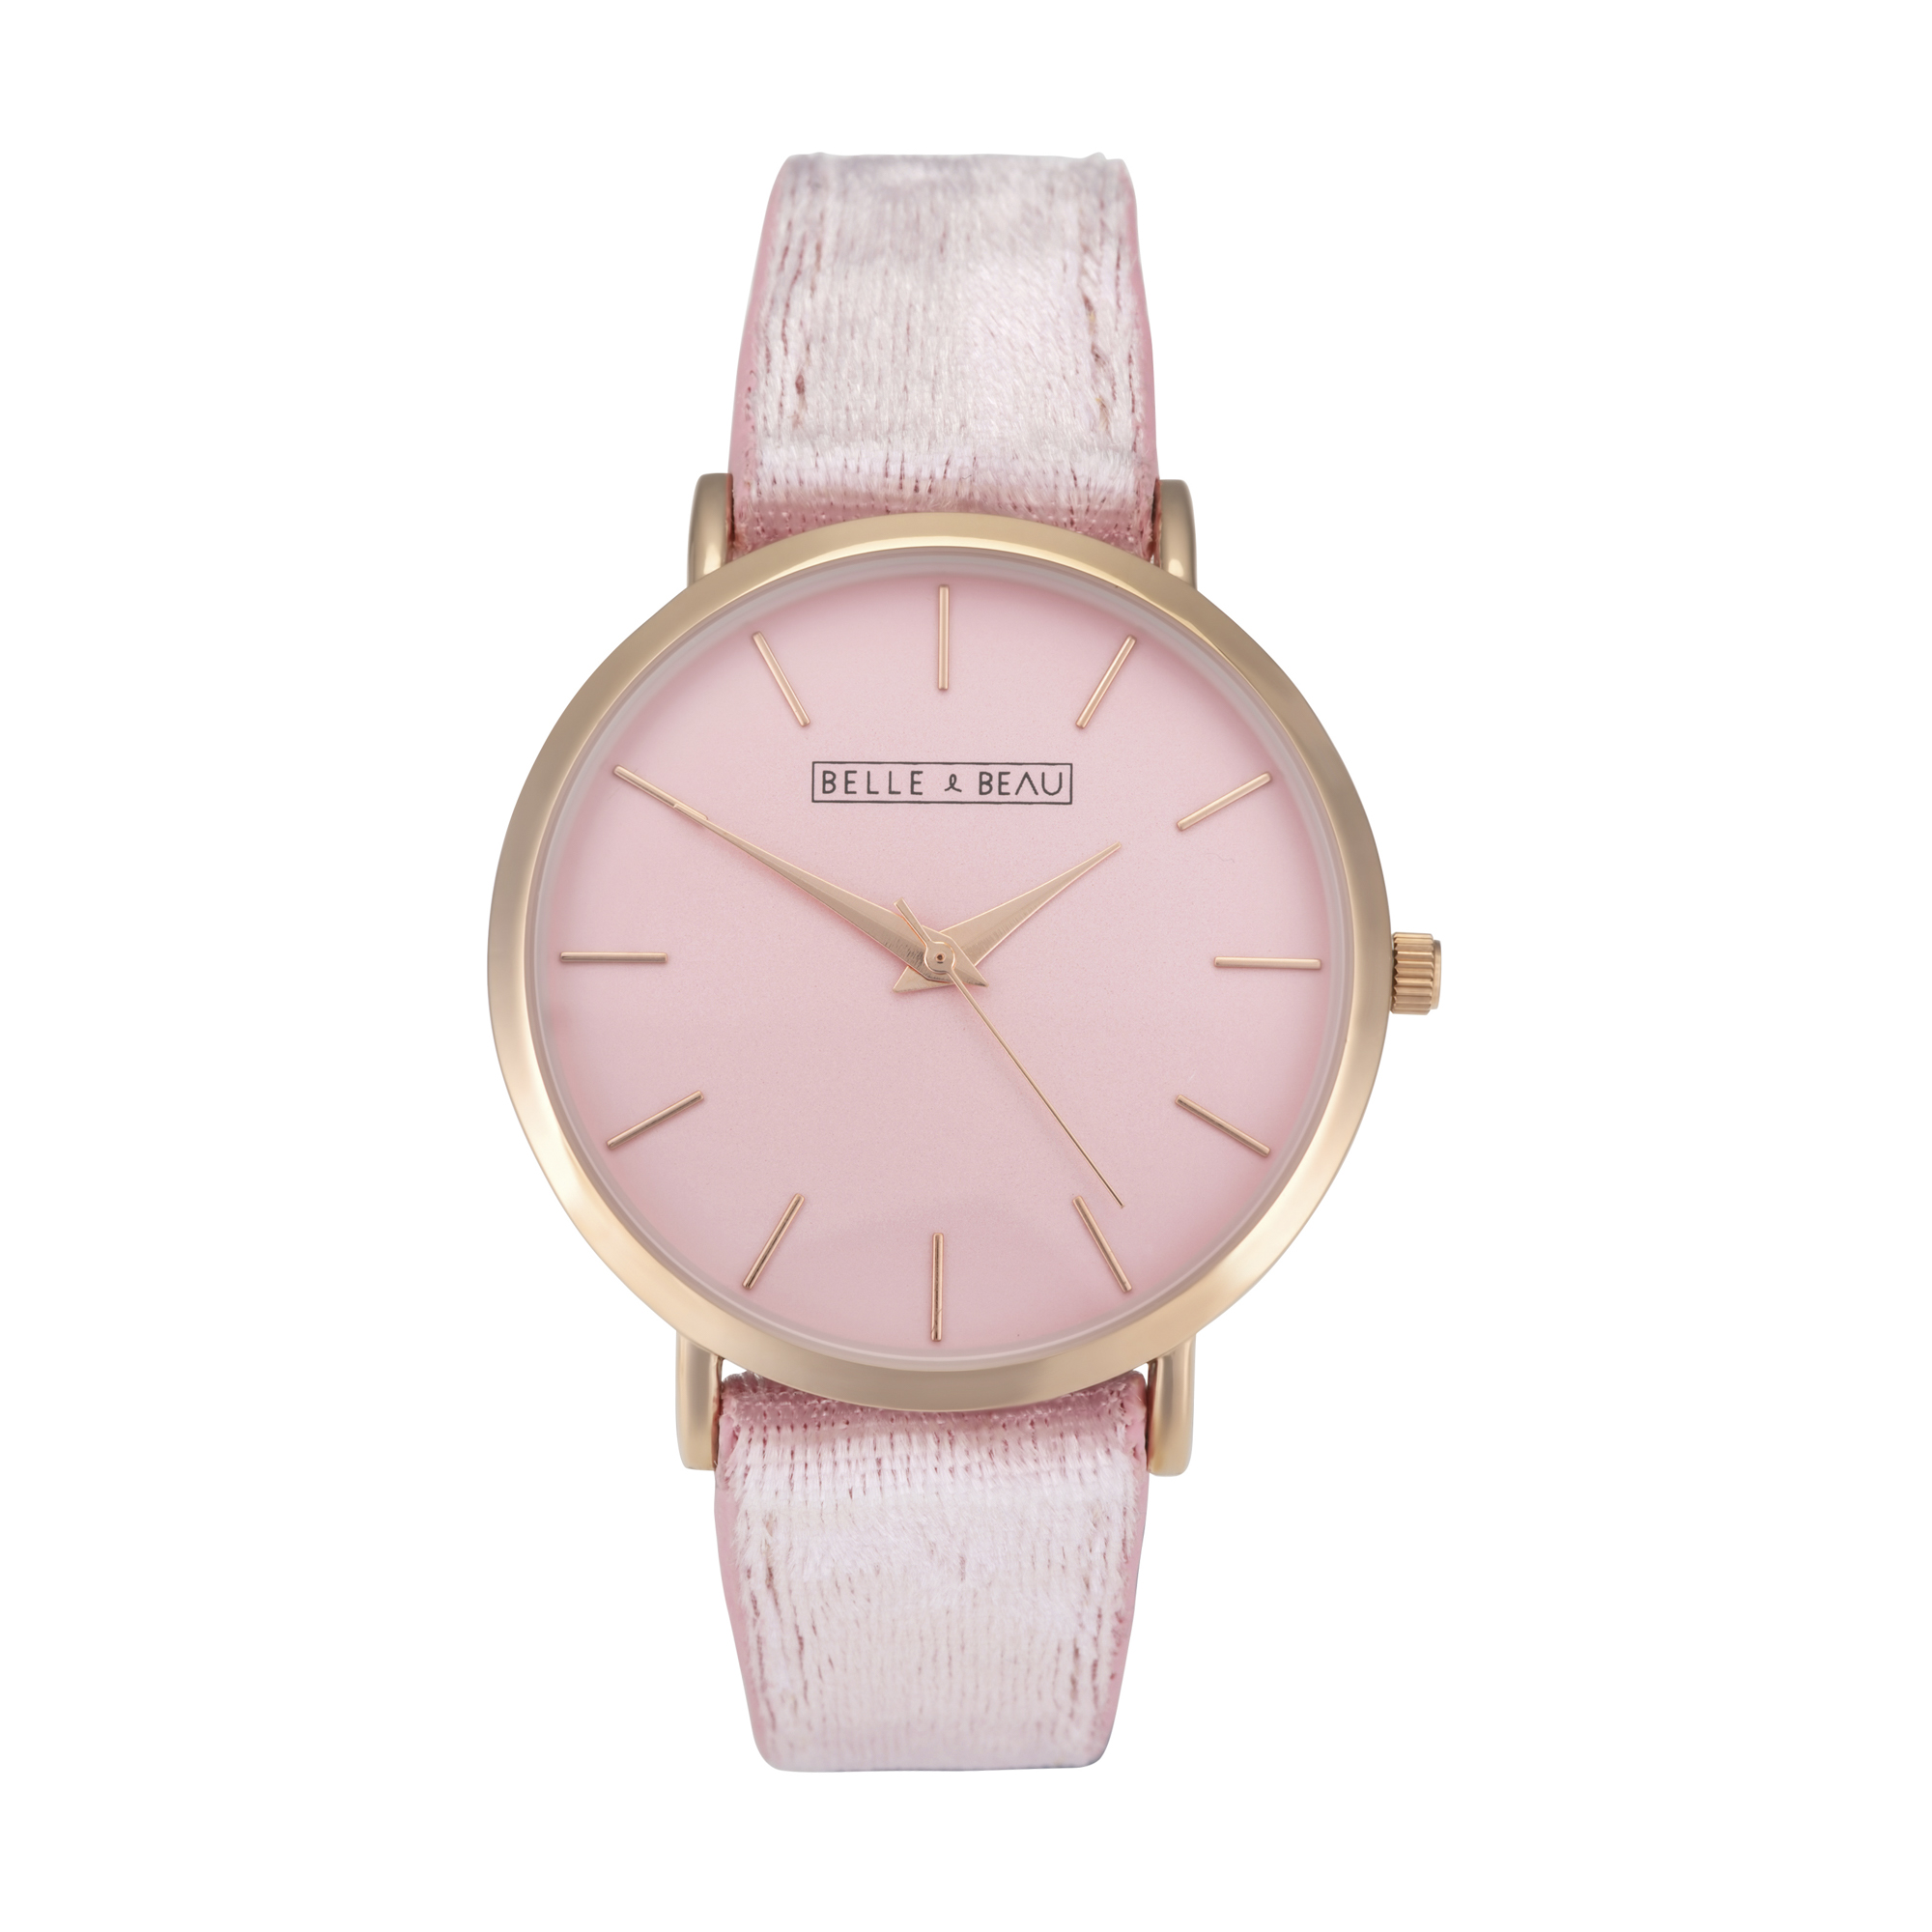 Bb Velvet Crush Vintage Rose Watch